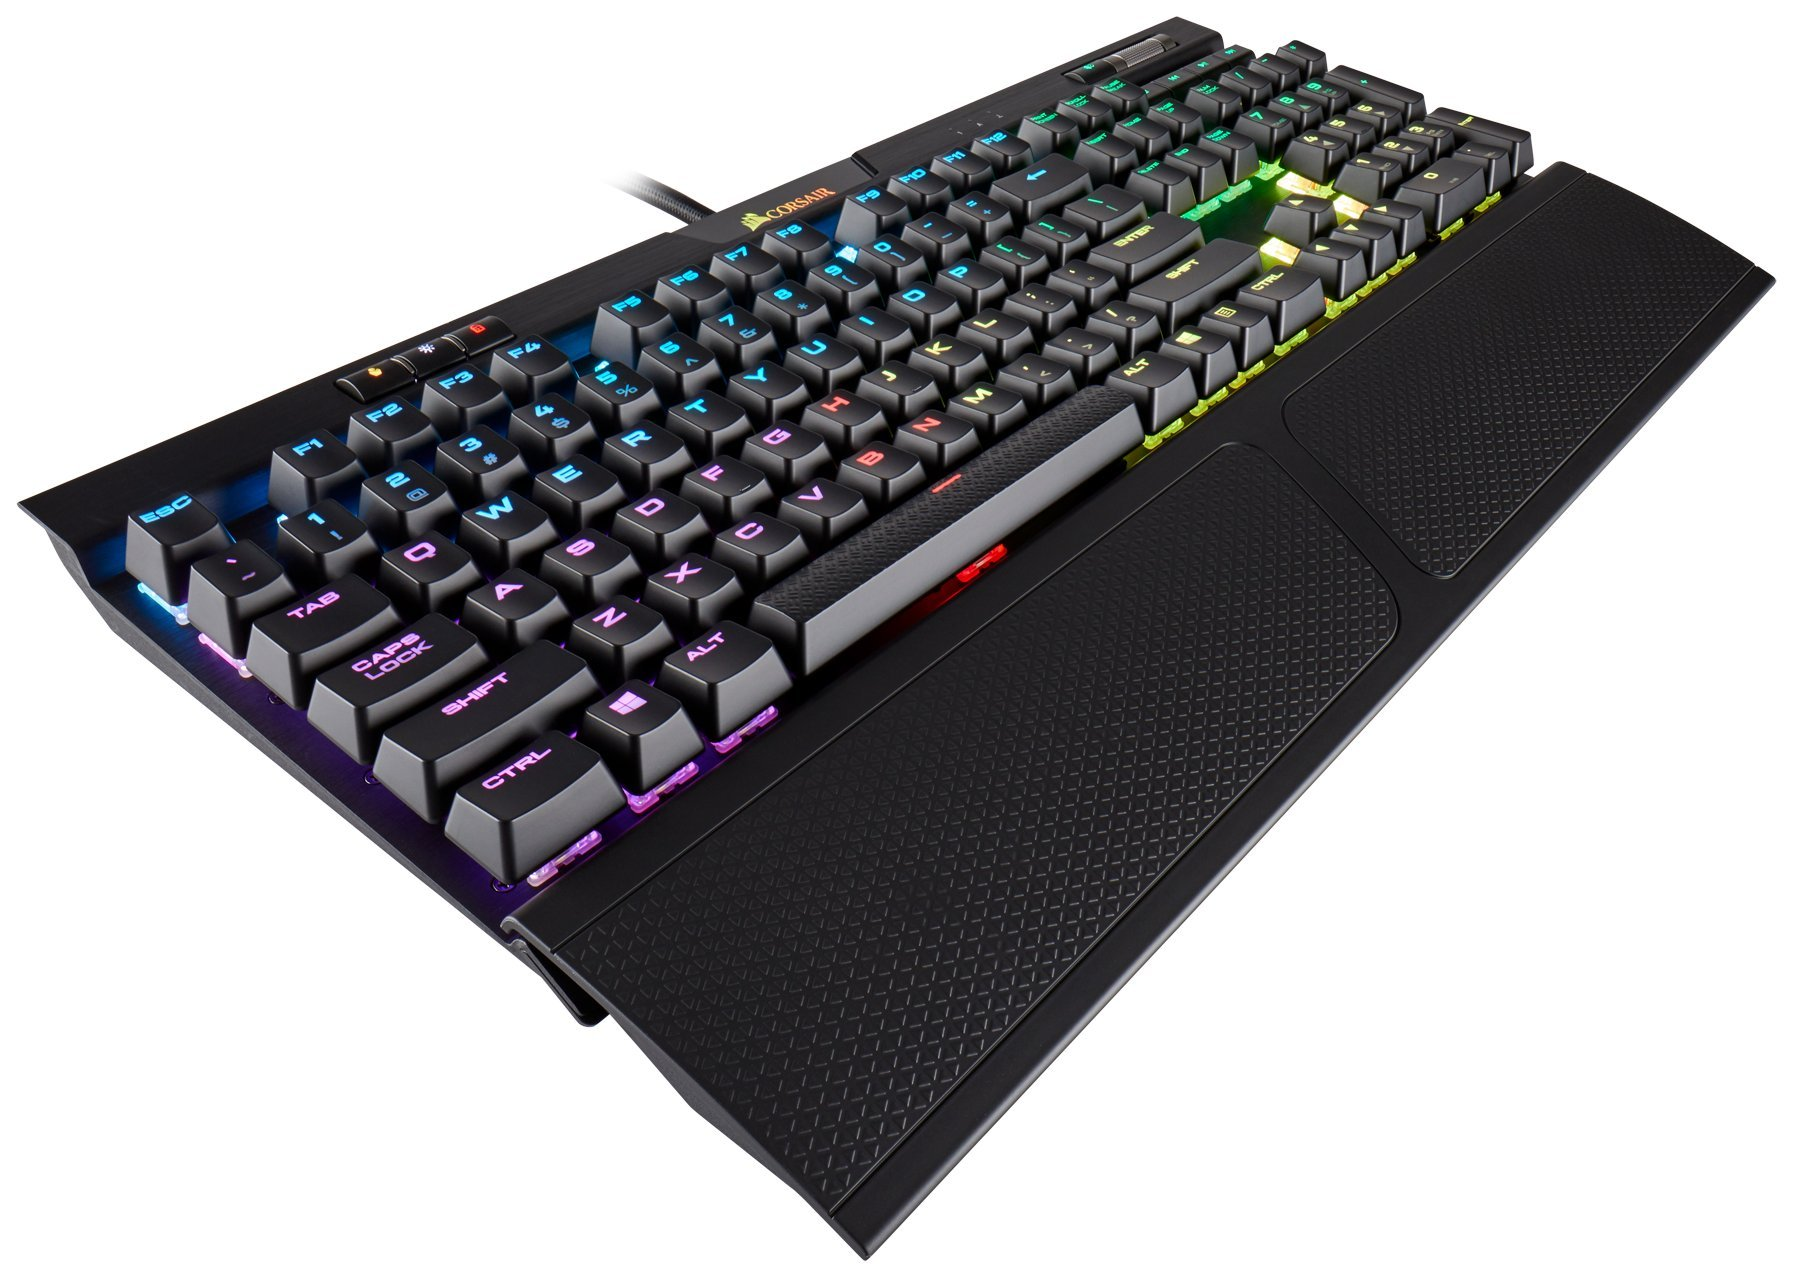 Teclado Mecanico : CORSAIR K70 RGB MK.2 Cherry MX Red